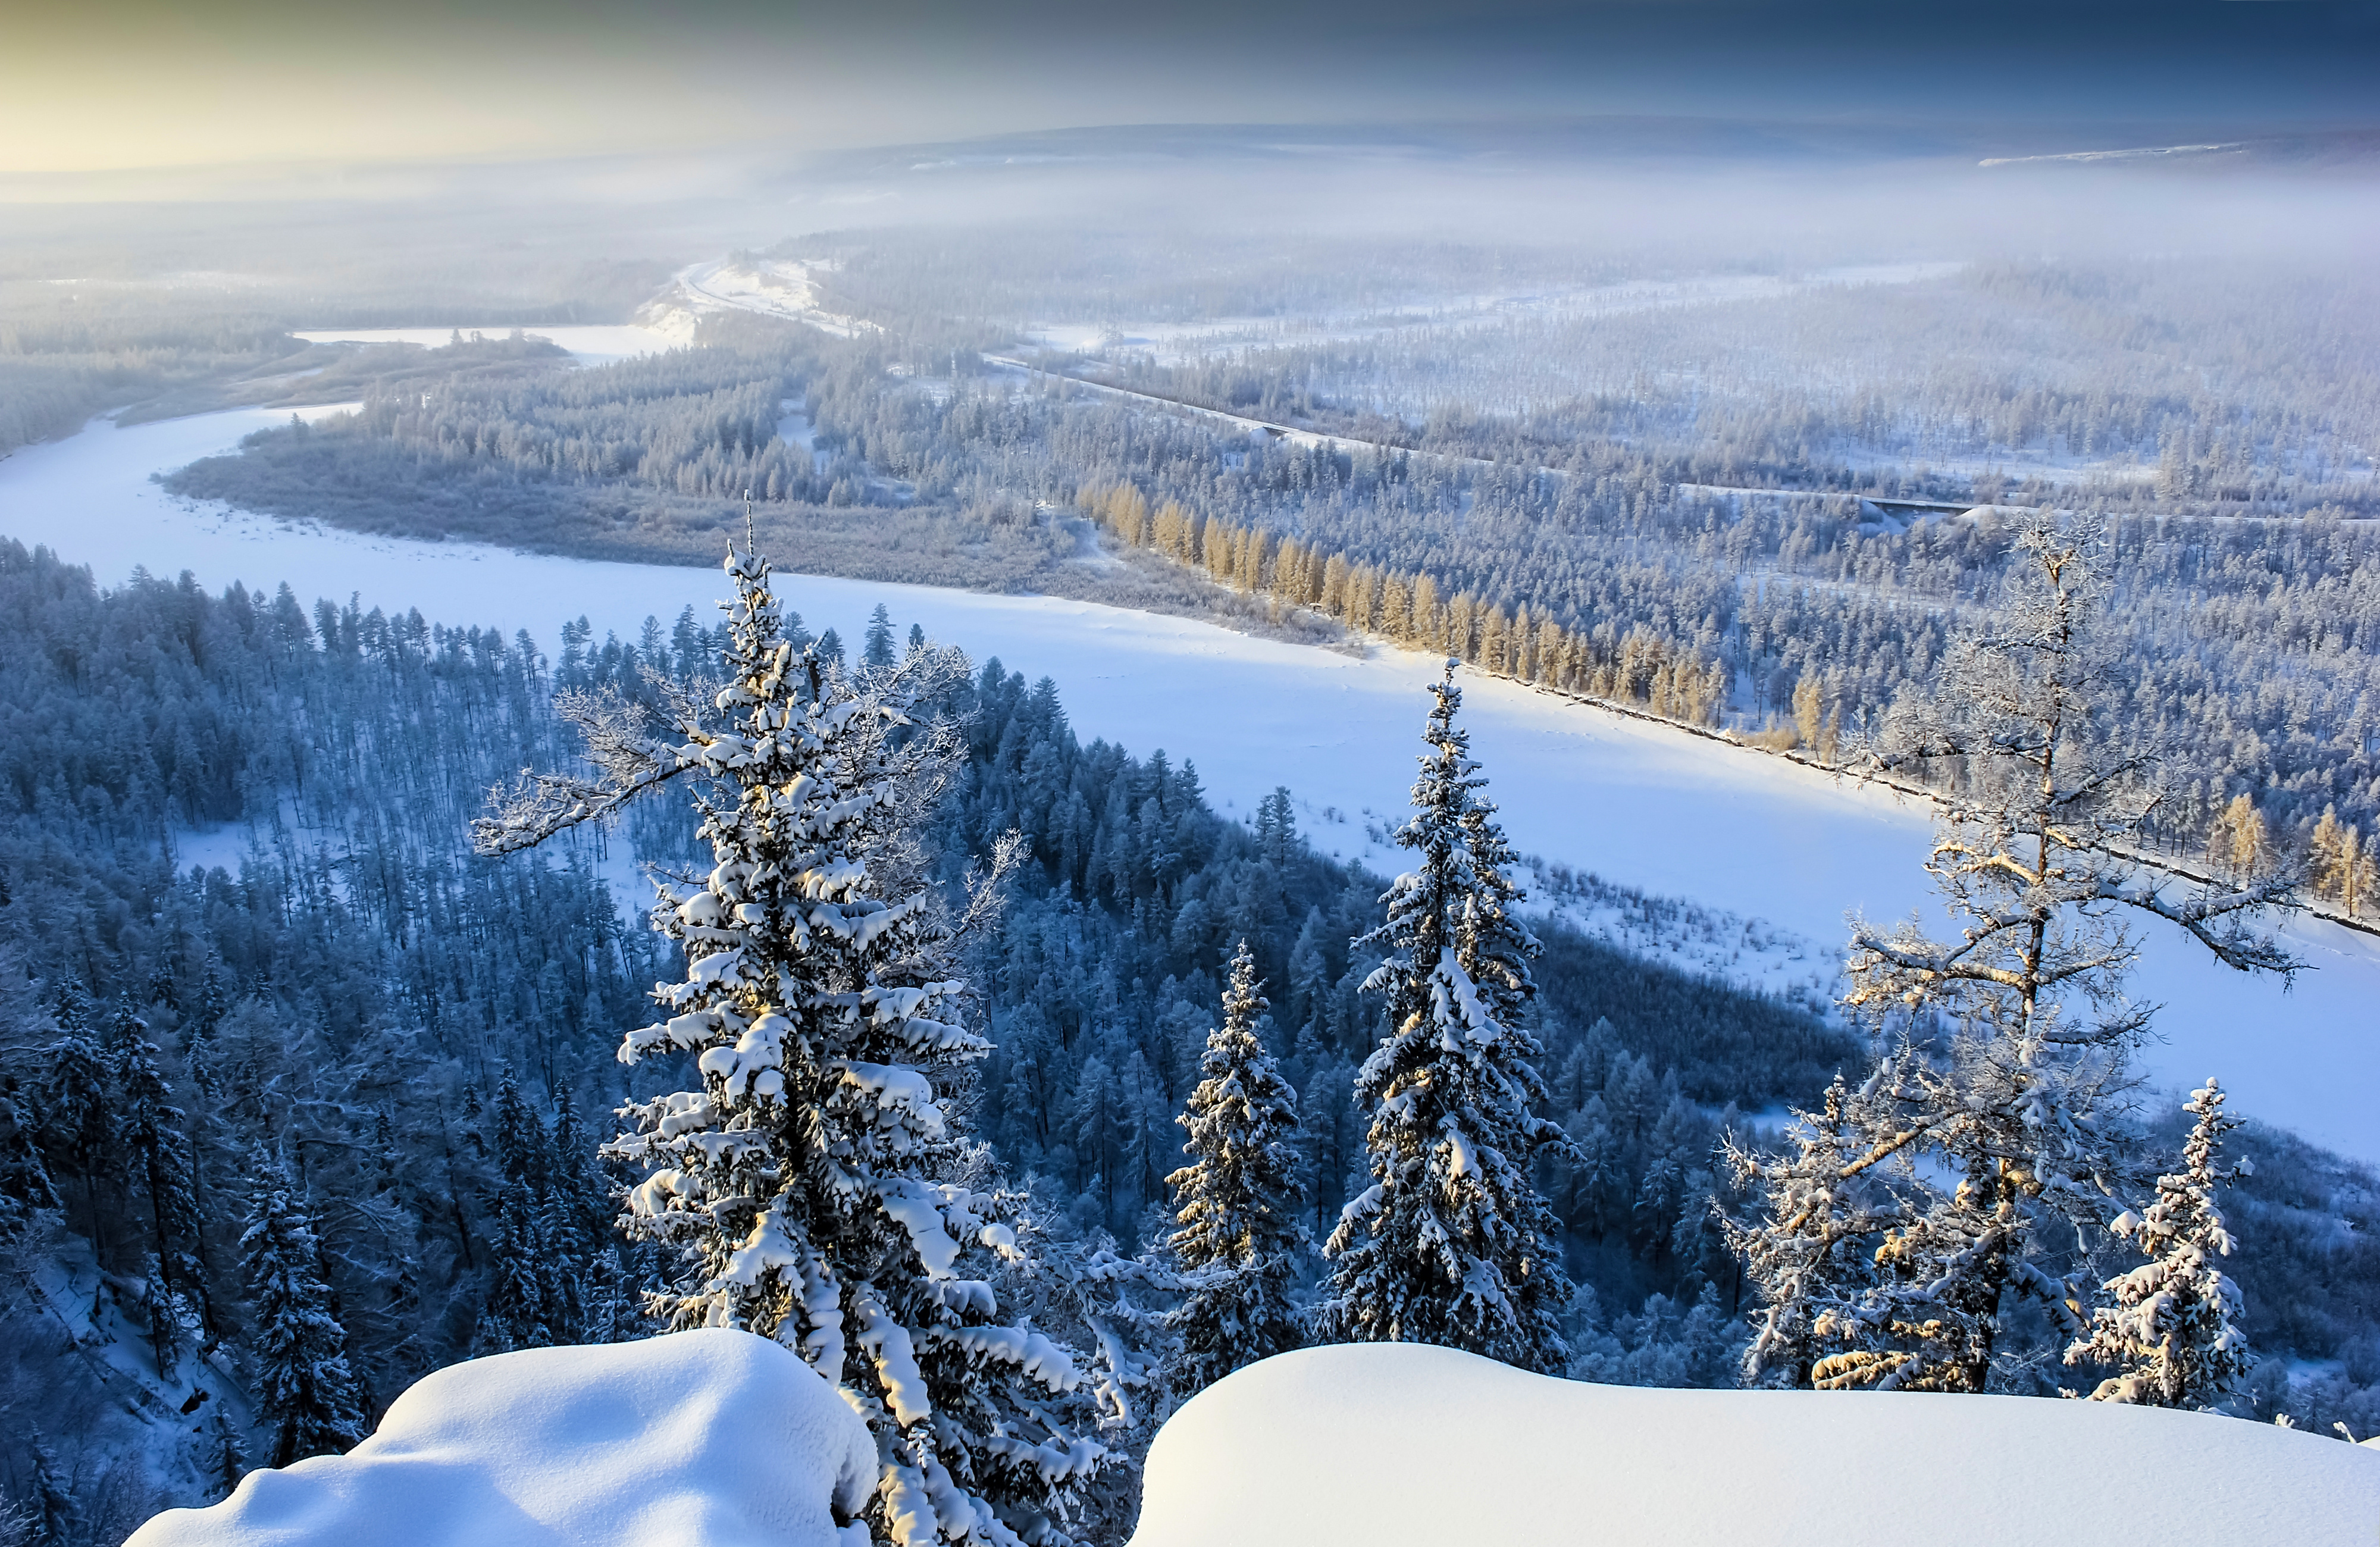 A white blanket engulfs the forests and the landscapes. Source: Lori images